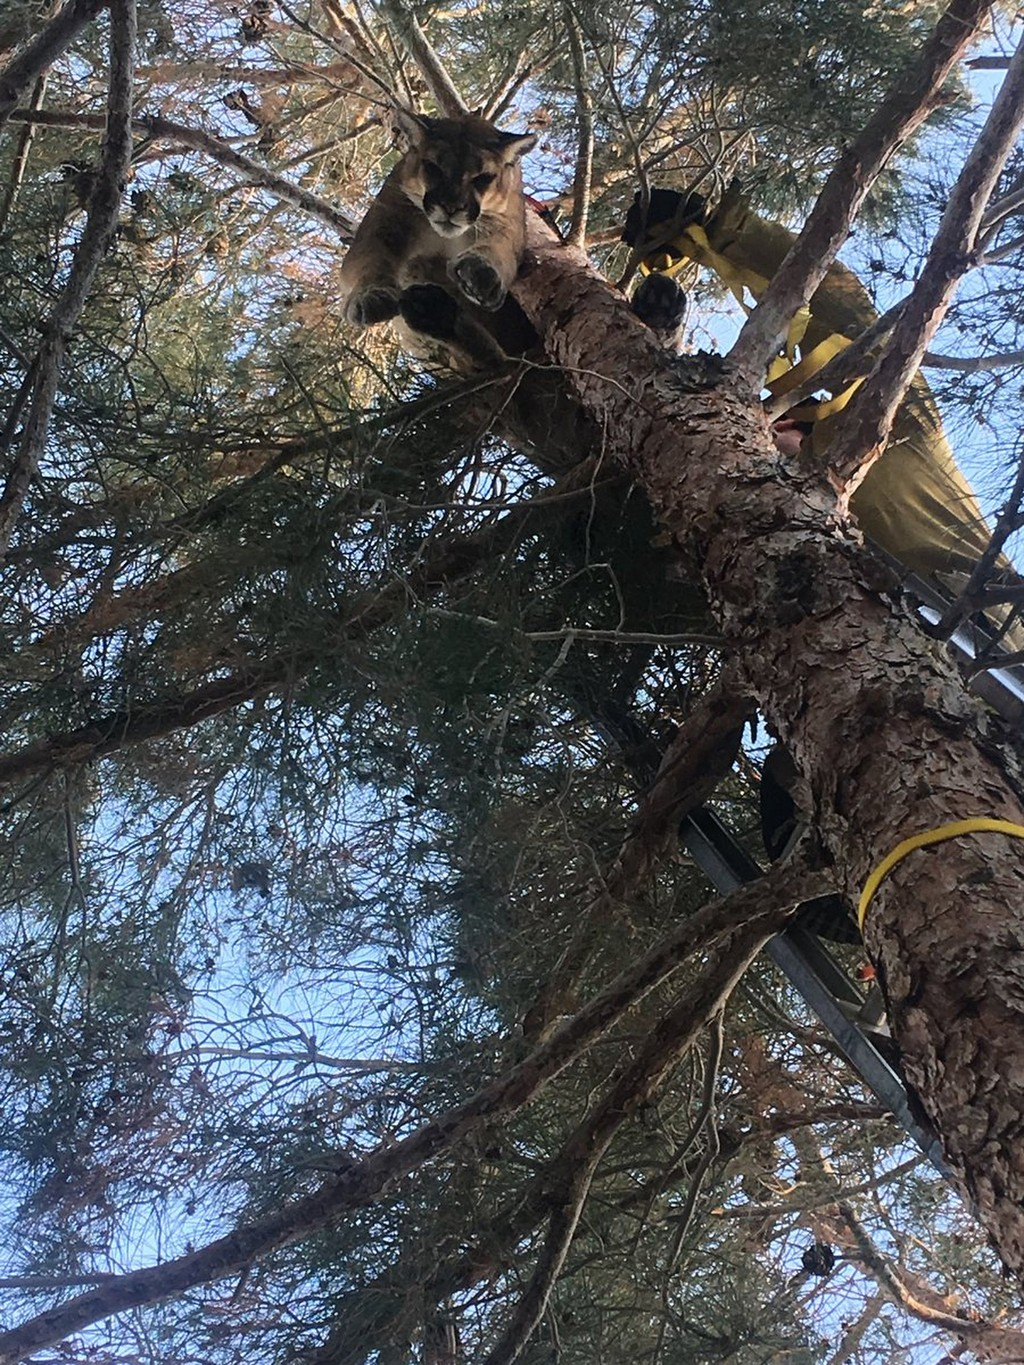 This Saturday, Feb. 16, 2019, photo provided by the California Department of Fish and Wildlife shows a mountain lion in a tree outside a private resid...